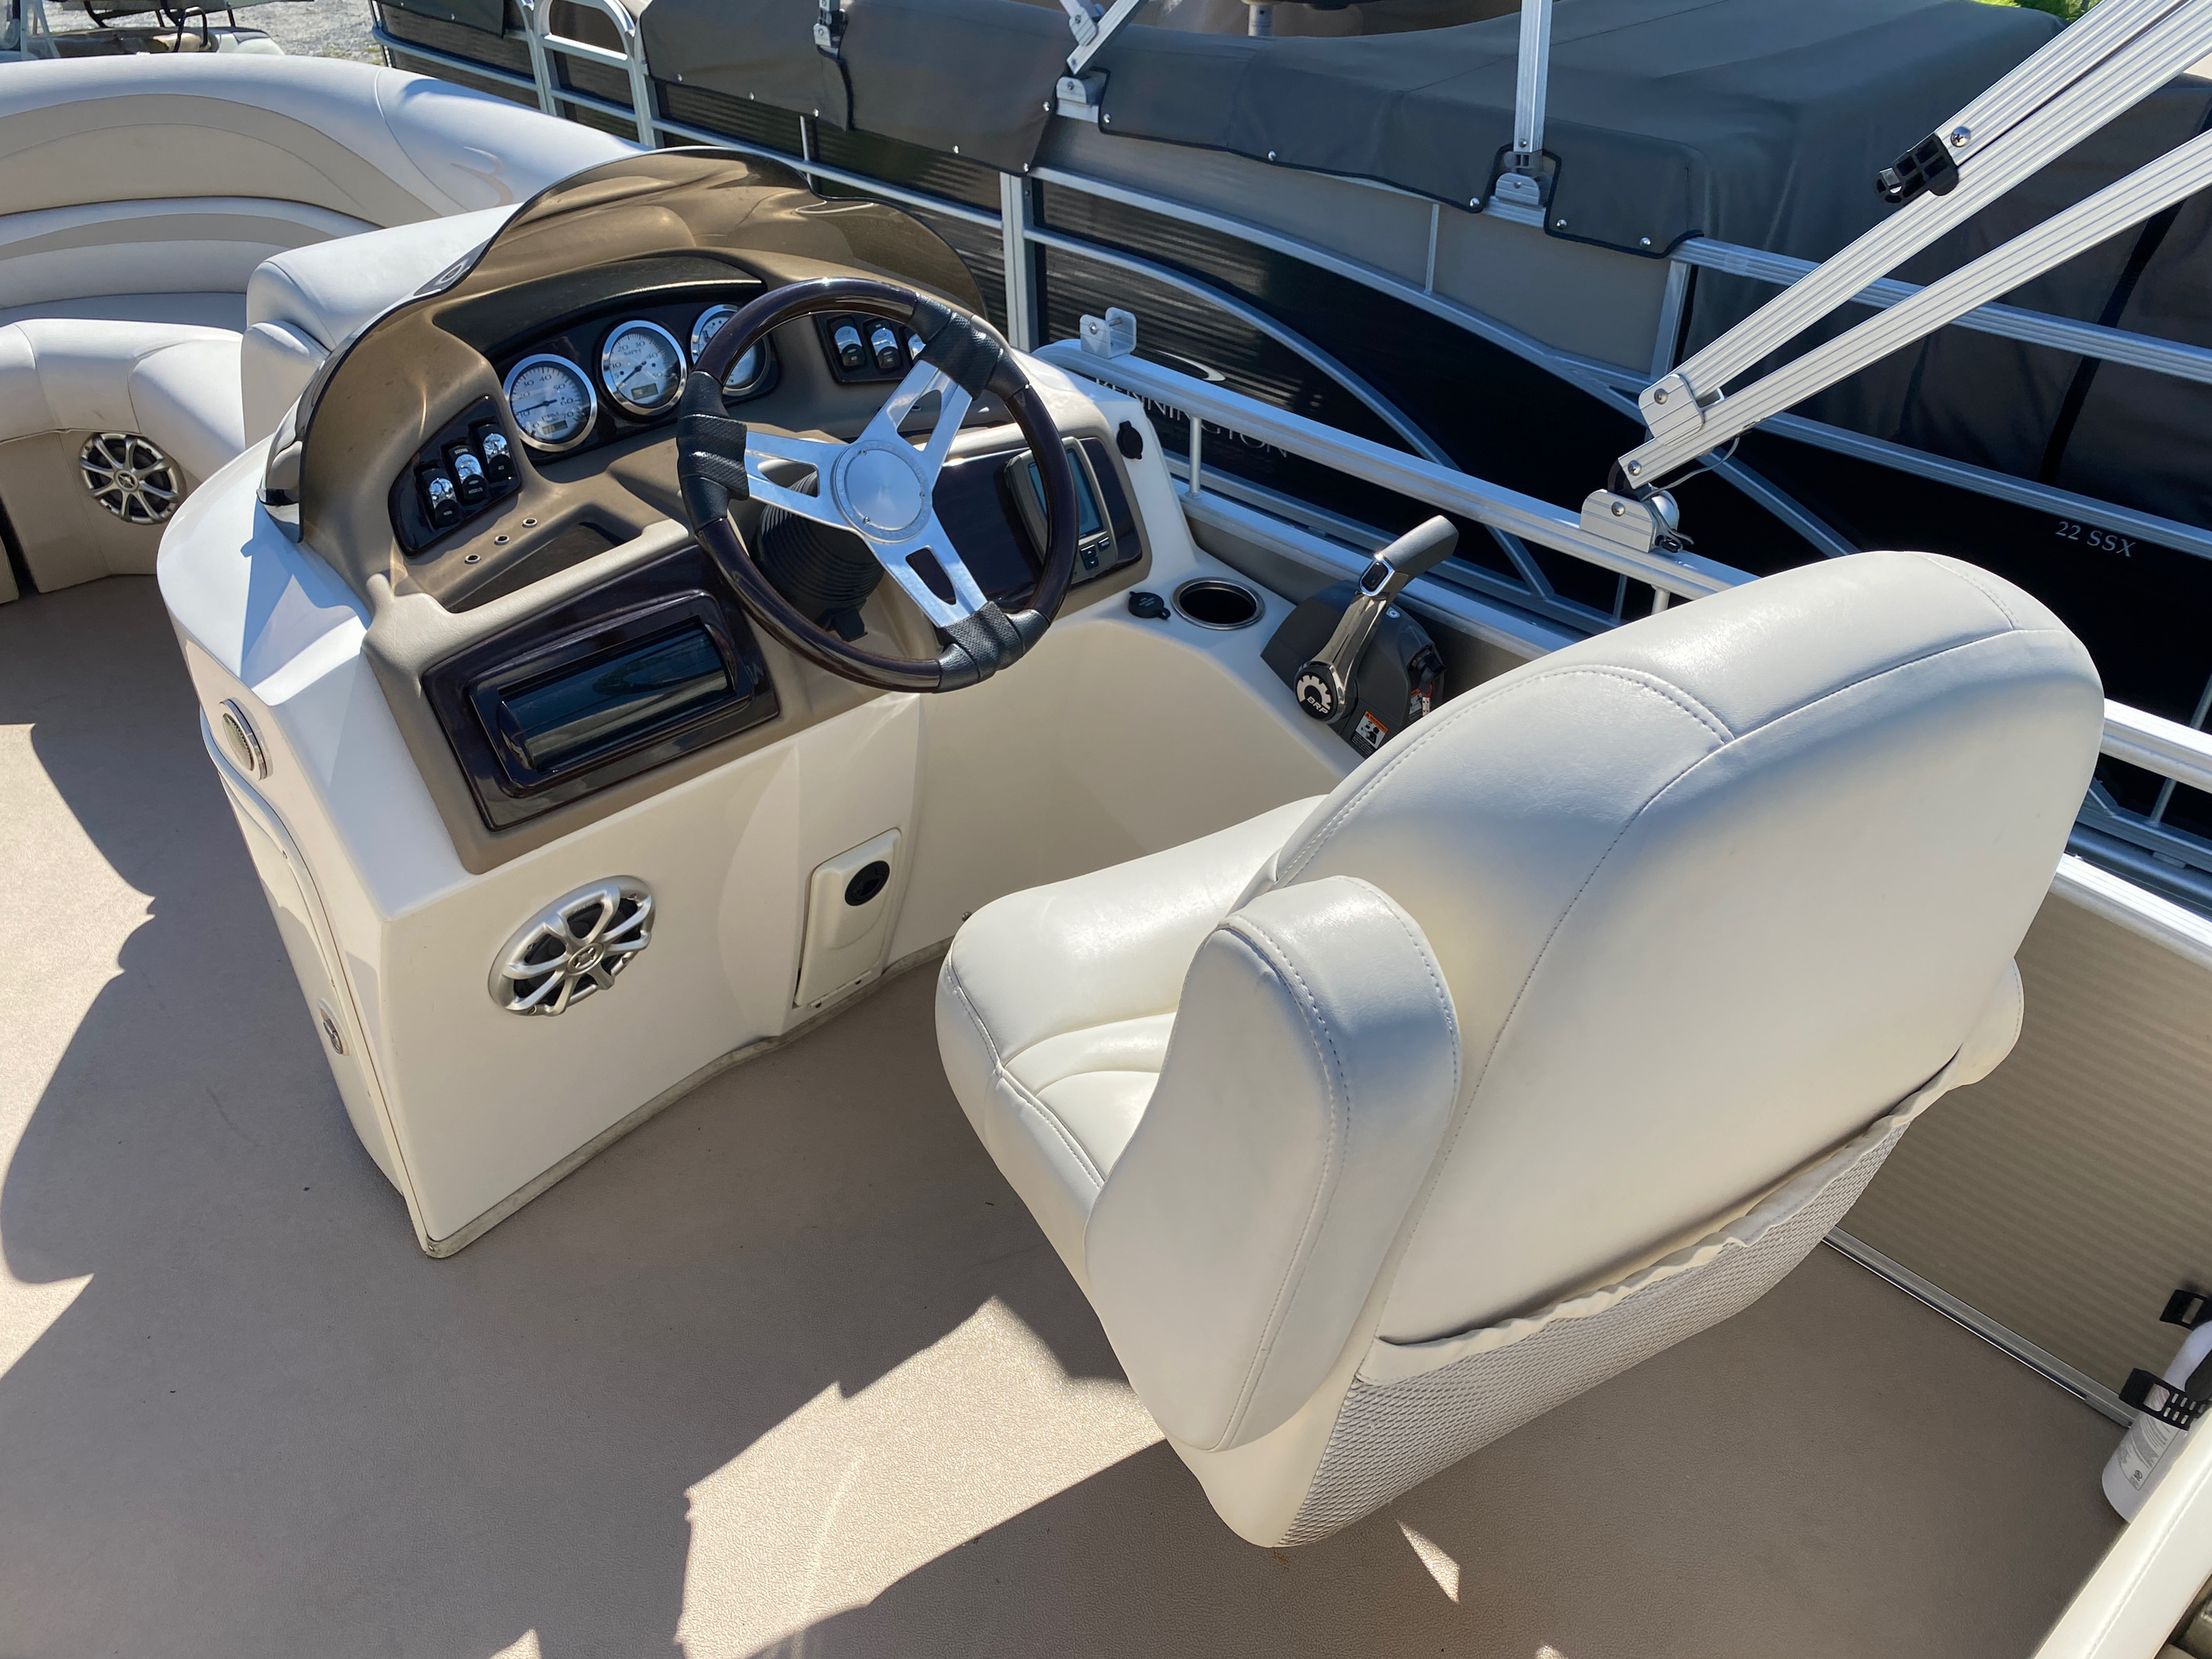 2012 Bennington boat for sale, model of the boat is 2275 GCW Pontoon & Image # 4 of 11